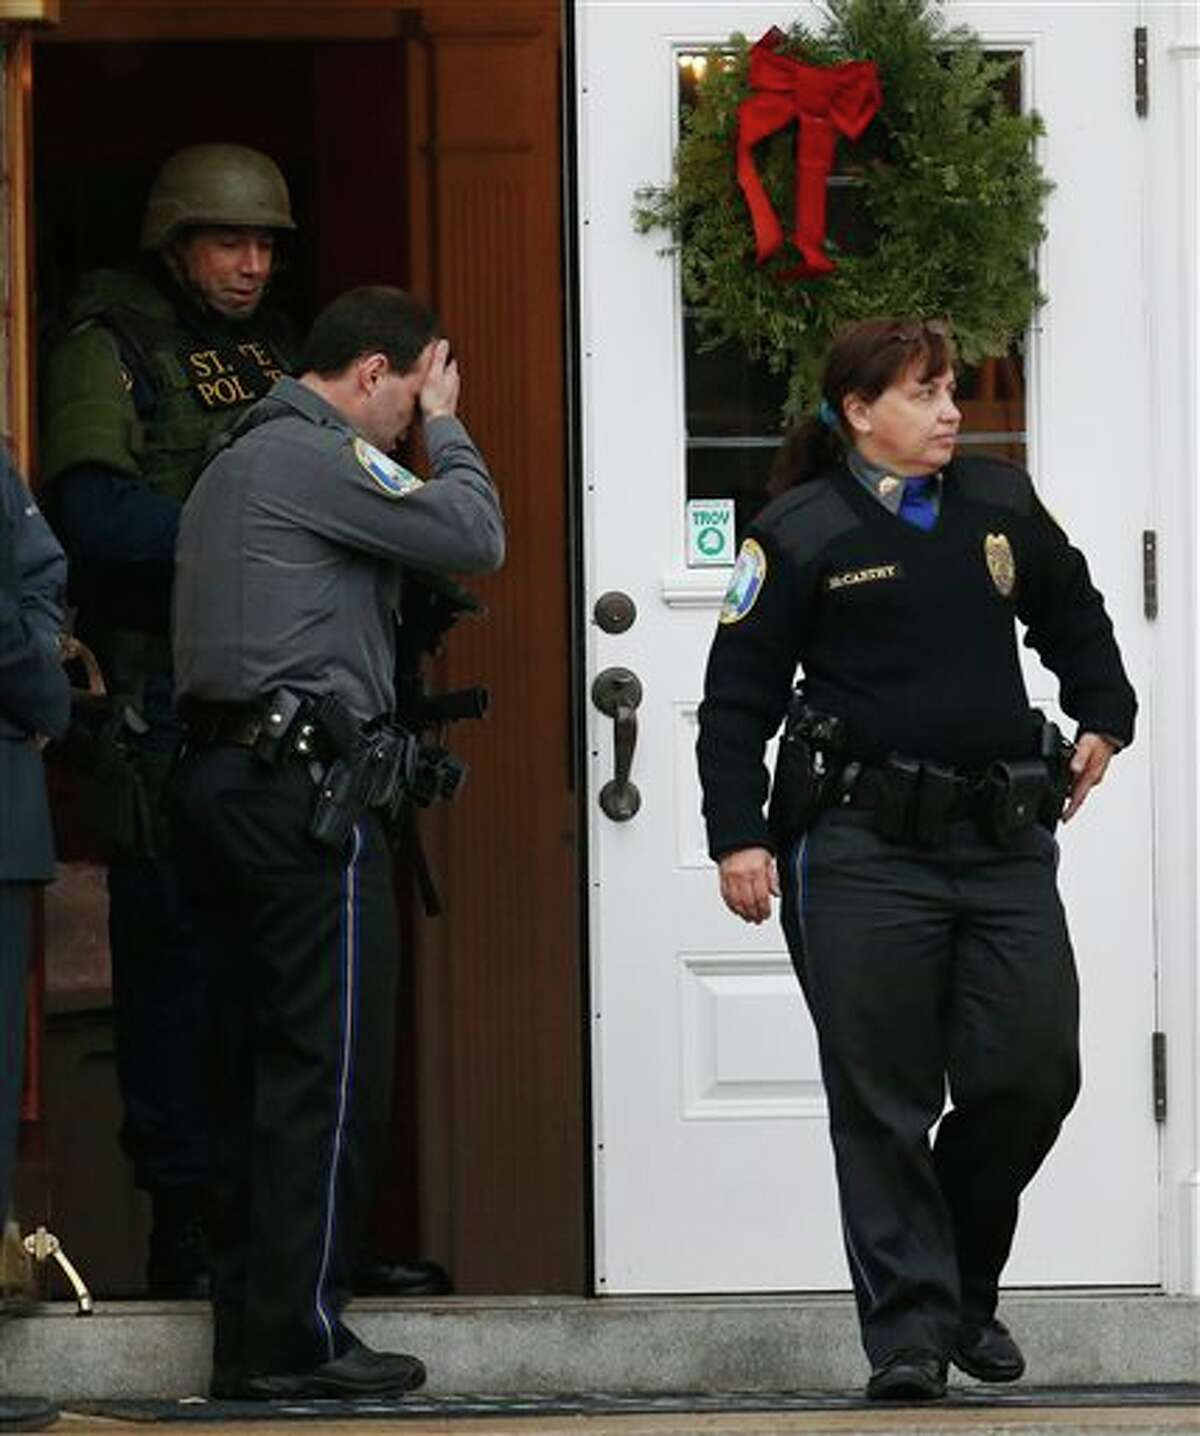 A Newtown Police officer, center, reacts as officer Maryhelen McCarthy, right, walks outside of St. Rose of Lima Roman Catholic Church while responding to a bomb threat, Sunday, Dec. 16, 2012, in Newtown, Conn. Worshippers hurriedly left the church Sunday, not far from where a gunman opened fire Friday inside the Sandy Hook Elementary School in Newtown. (AP Photo/Julio Cortez)